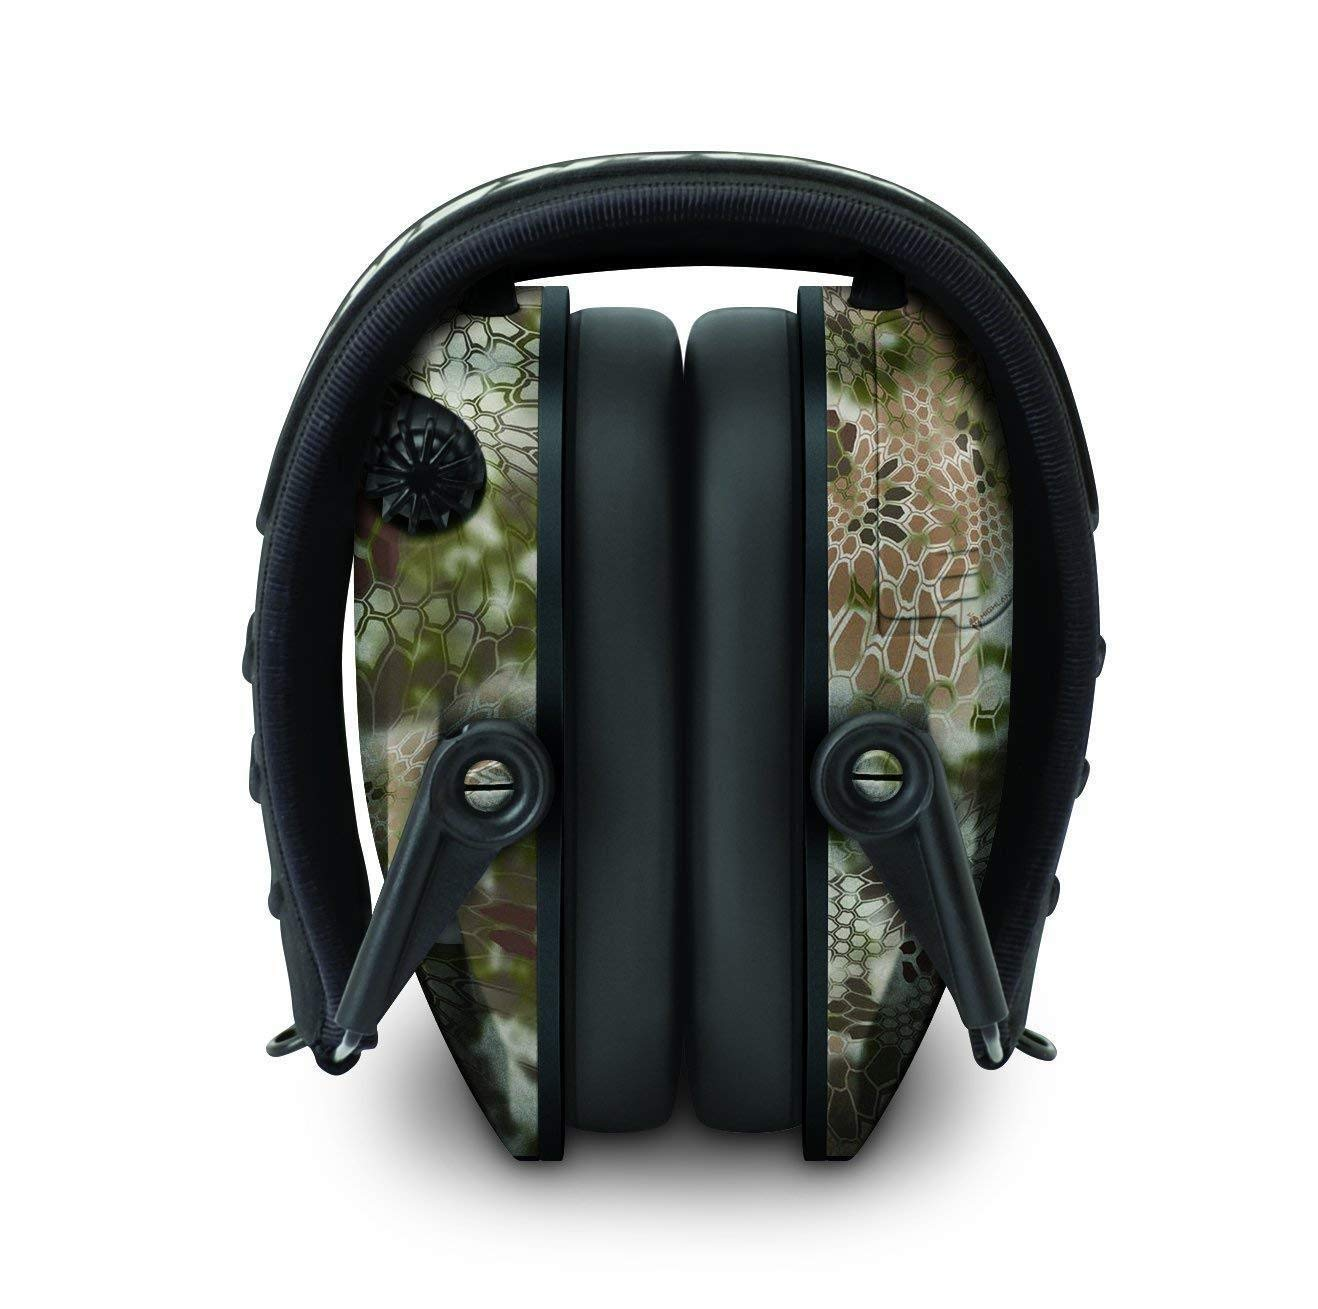 Walkers Razor Slim Electronic Shooting Hearing Protection Muff (Kryptek Camo) with Protective Case by Walkers (Image #6)